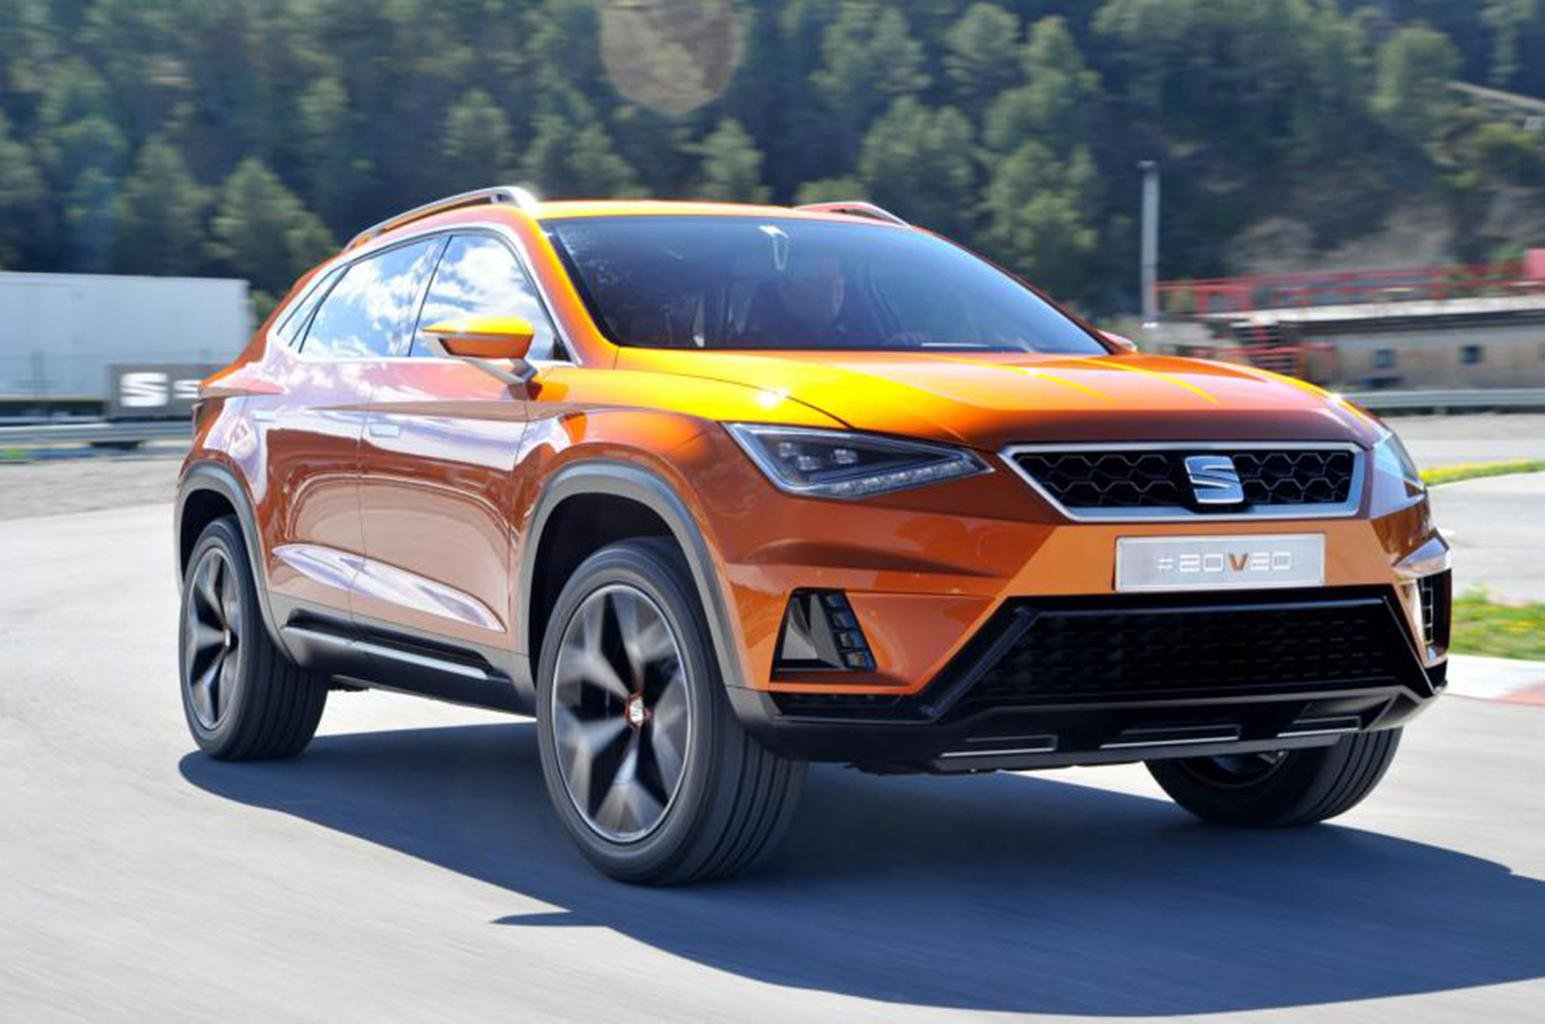 2018 Seat SUV – price, specs and release date